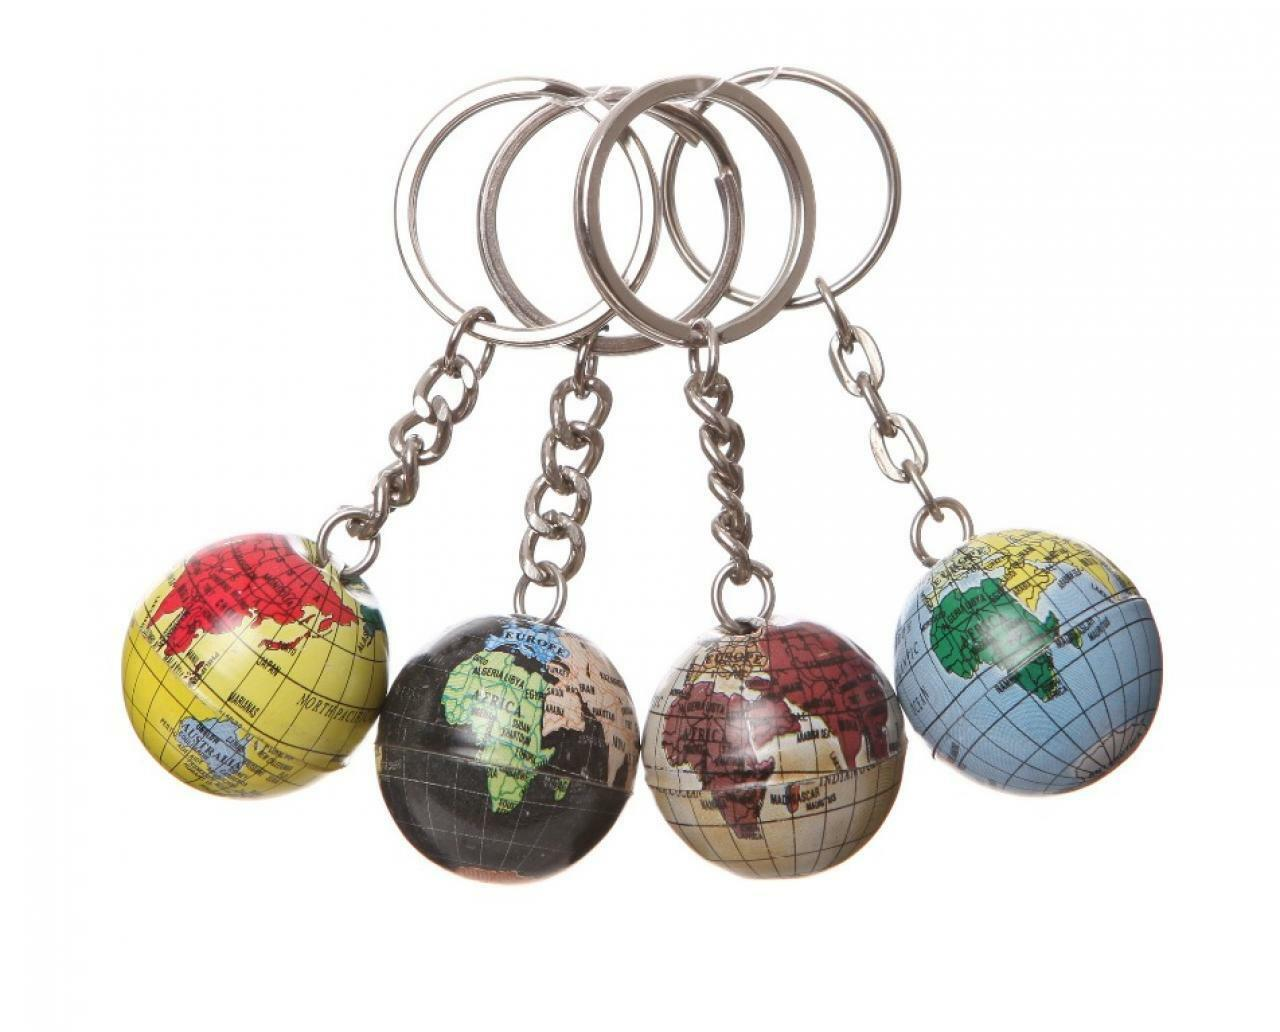 S4 mini world globe map of the earth atlas geography vintage s4 mini world globe map of the earth atlas geography vintage keyrings mens gift gumiabroncs Image collections